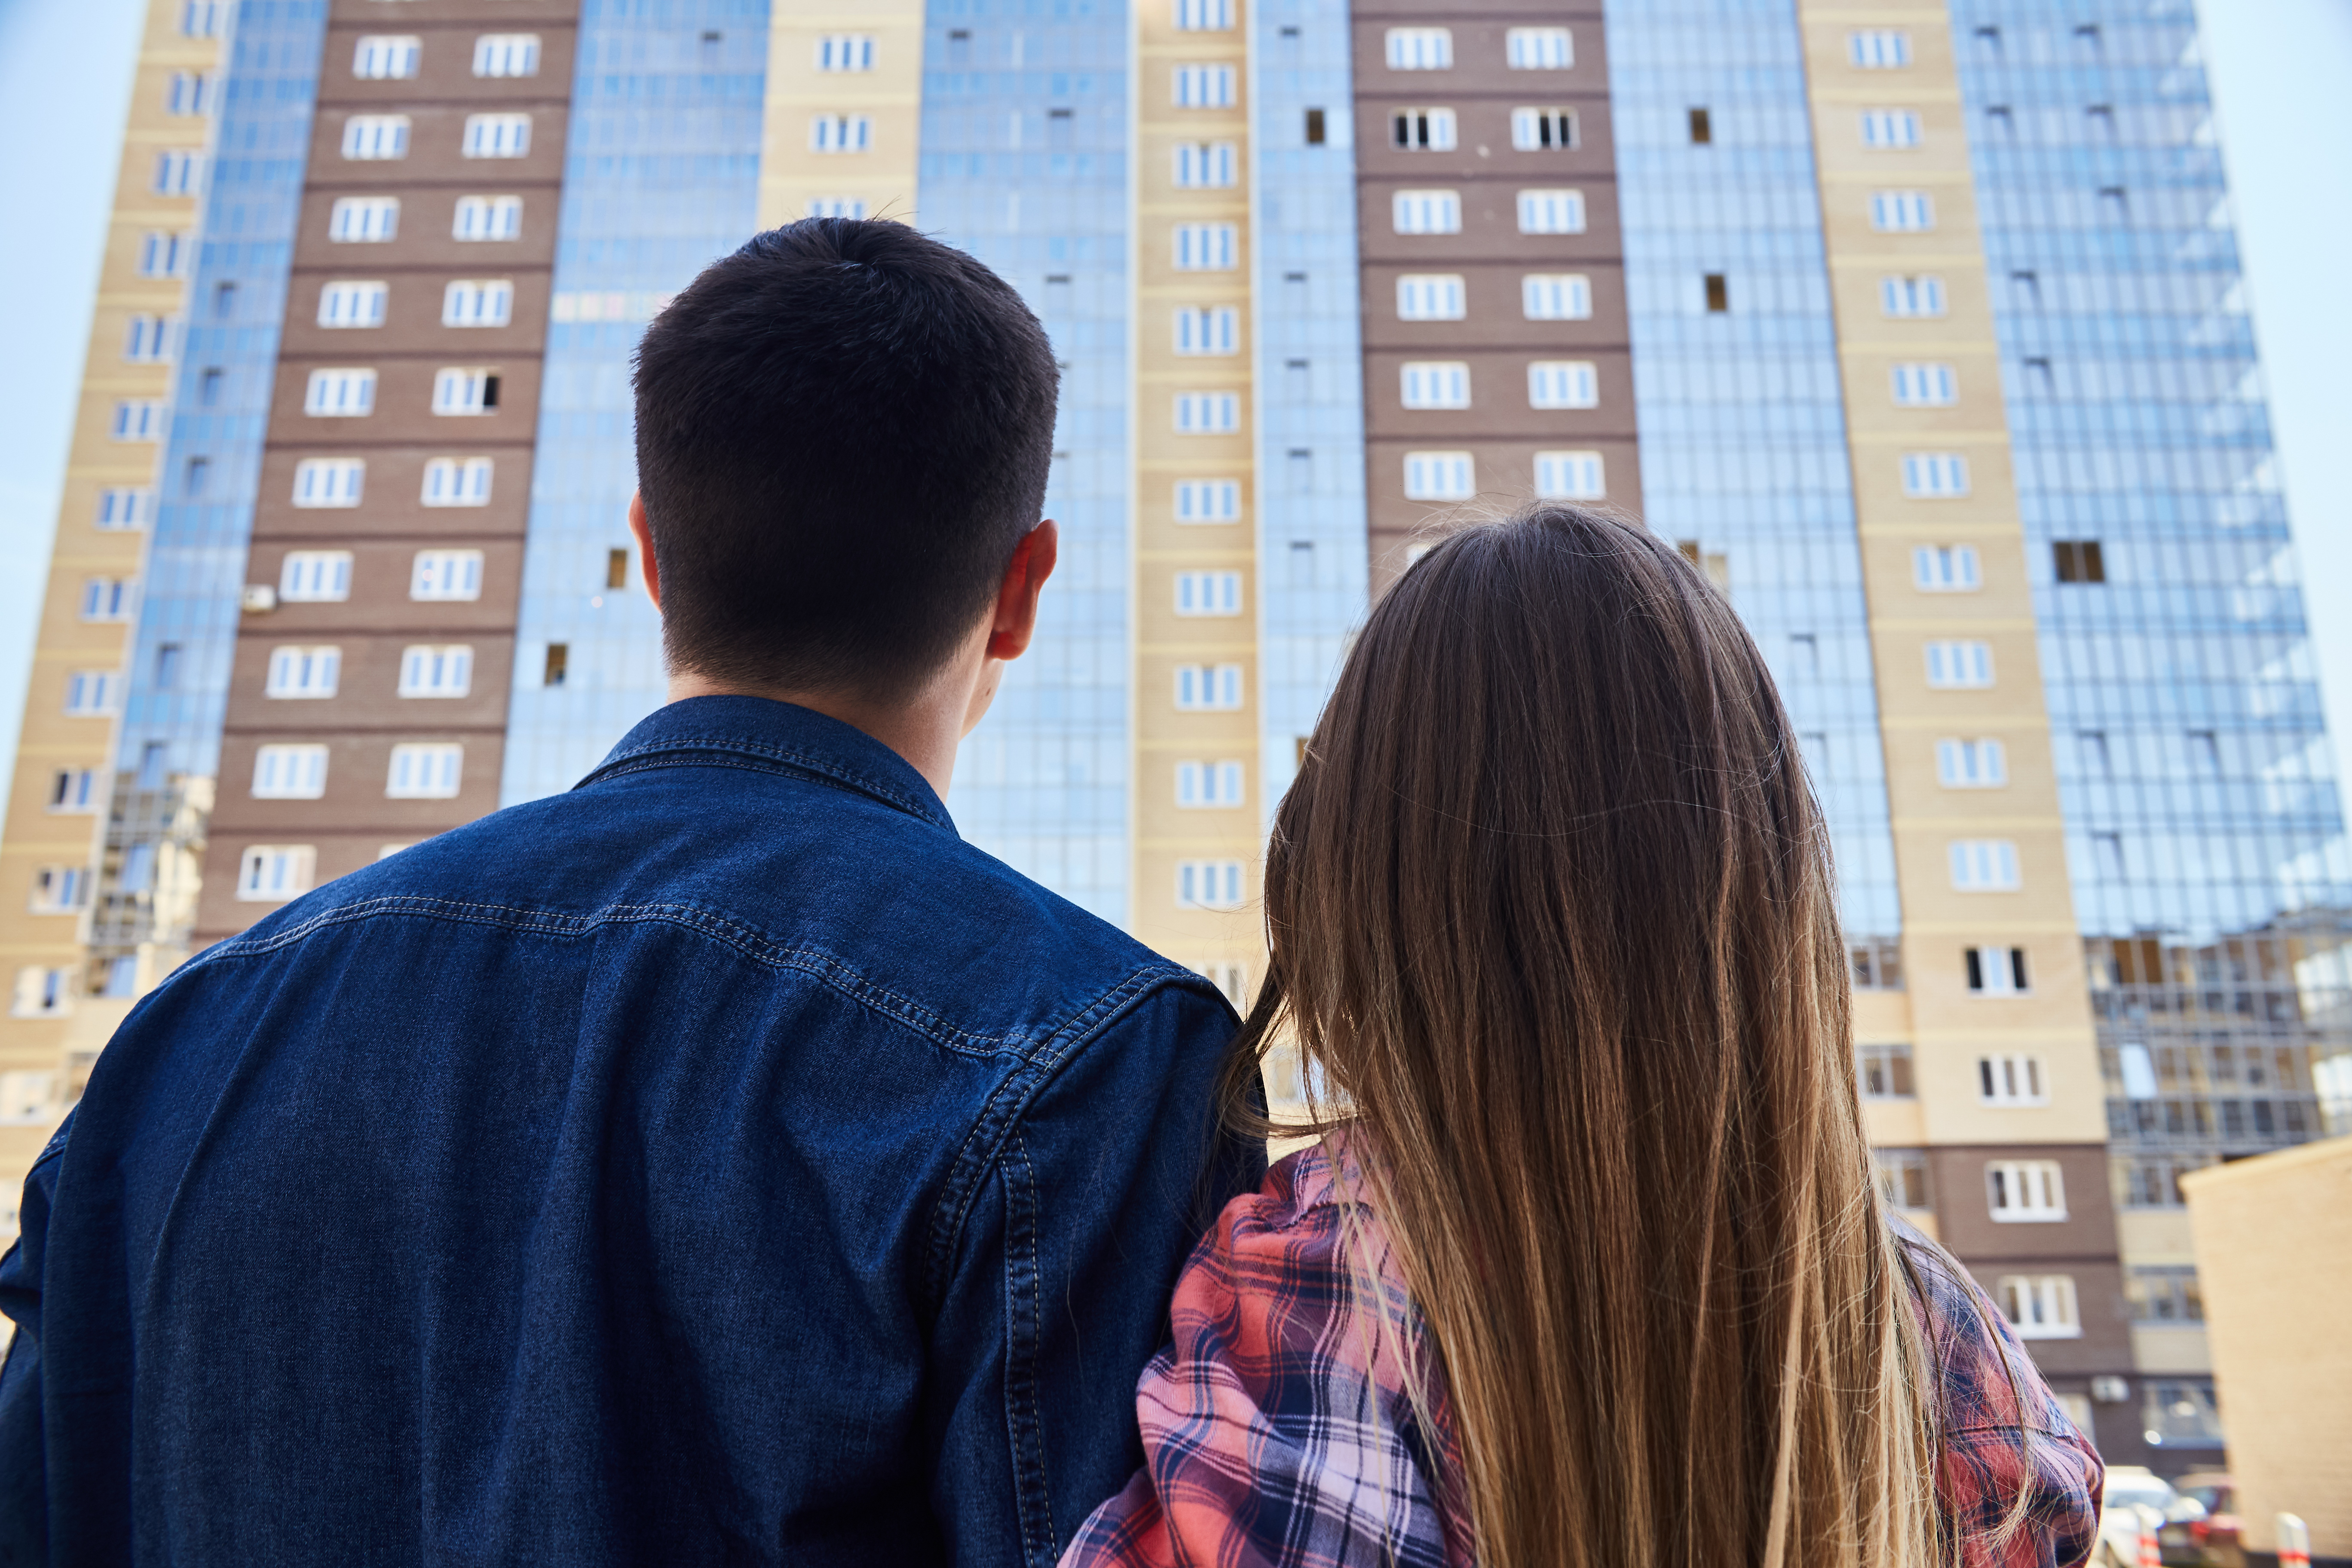 'Chances for young Britons to buy homes cut by half'